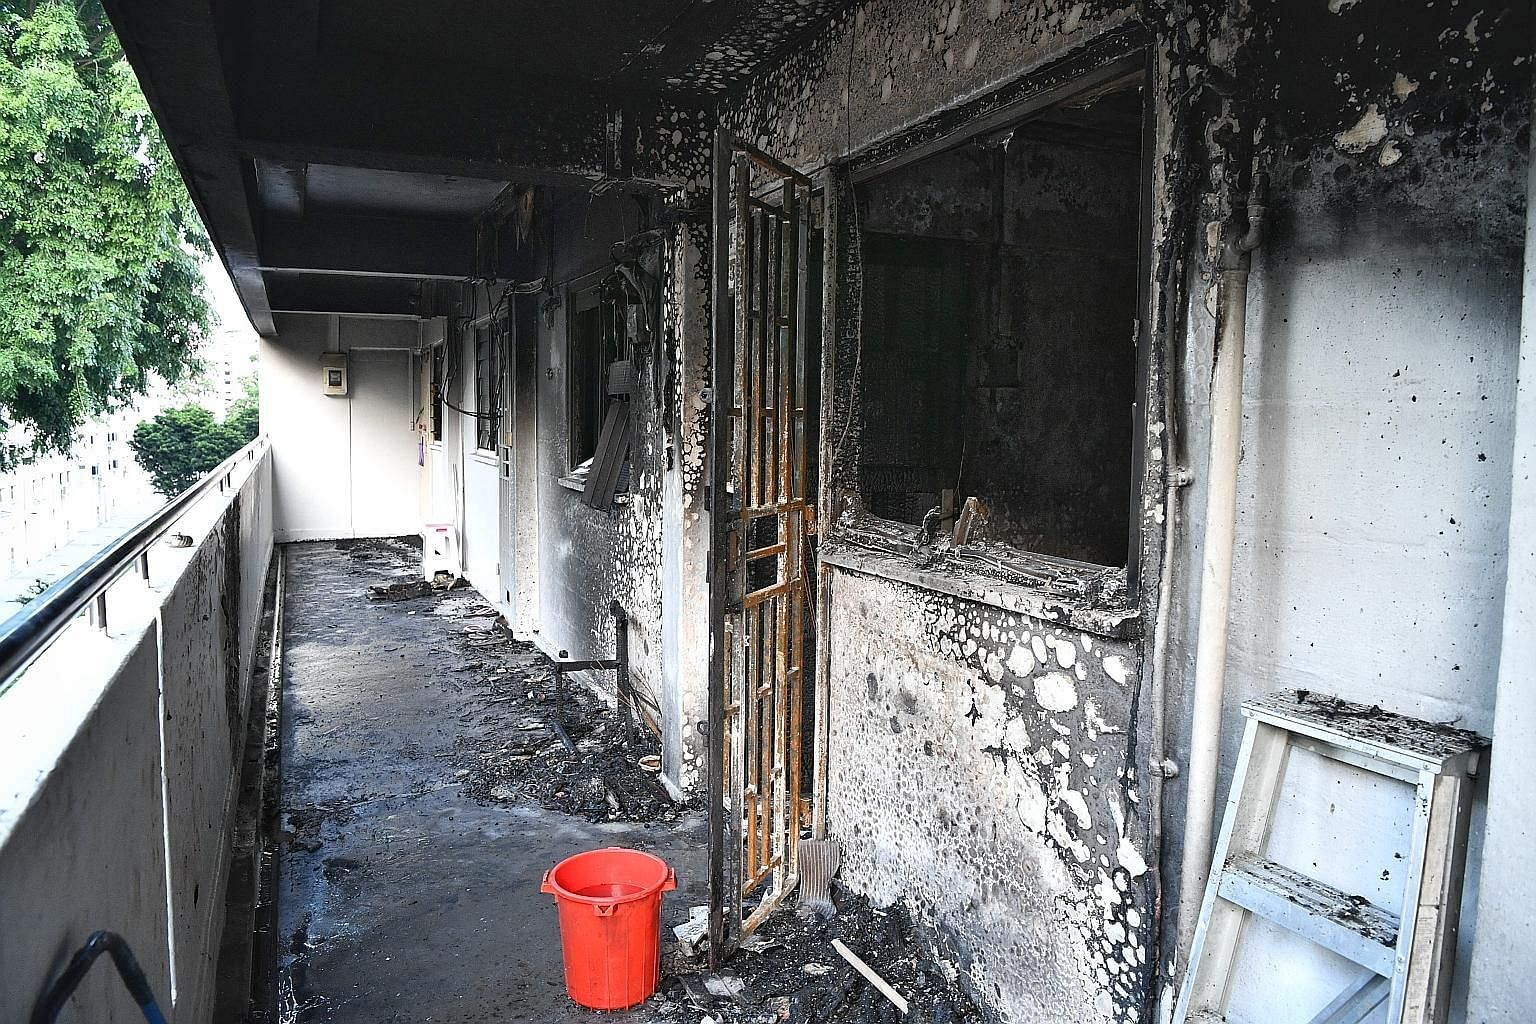 The corridor outside the fourth-floor unit in Block 224 Ang Mo Kio Avenue 1 that was gutted in the fire yesterday. The SCDF rescued one adult and three children from the unit next to the flat. Around 60 people from the block were also evacuated. This